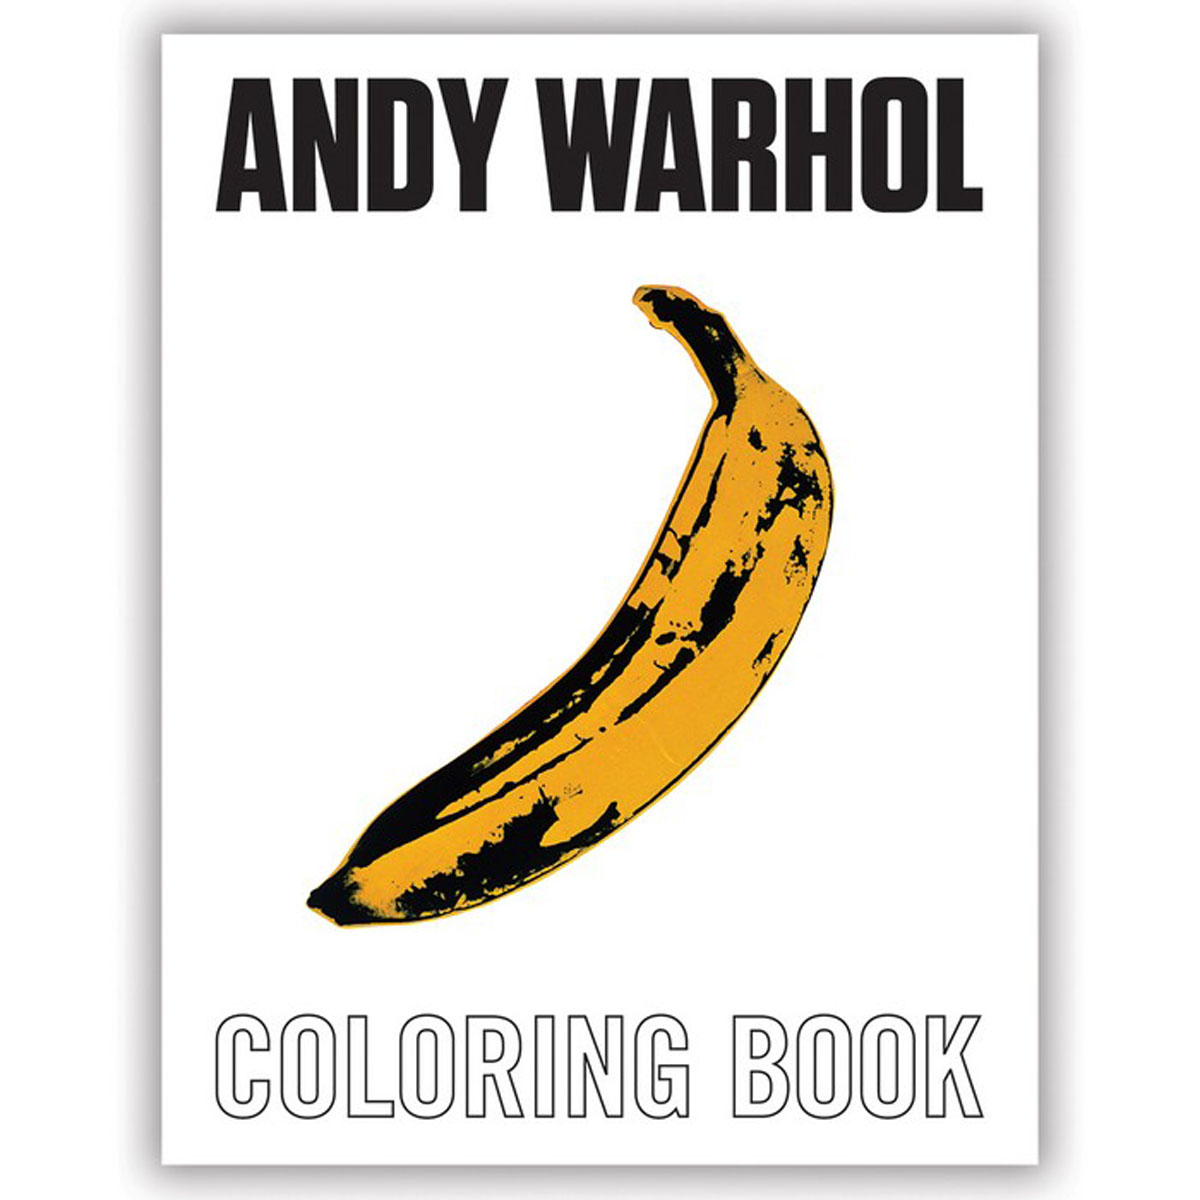 Andy Warhol Coloring Book купить